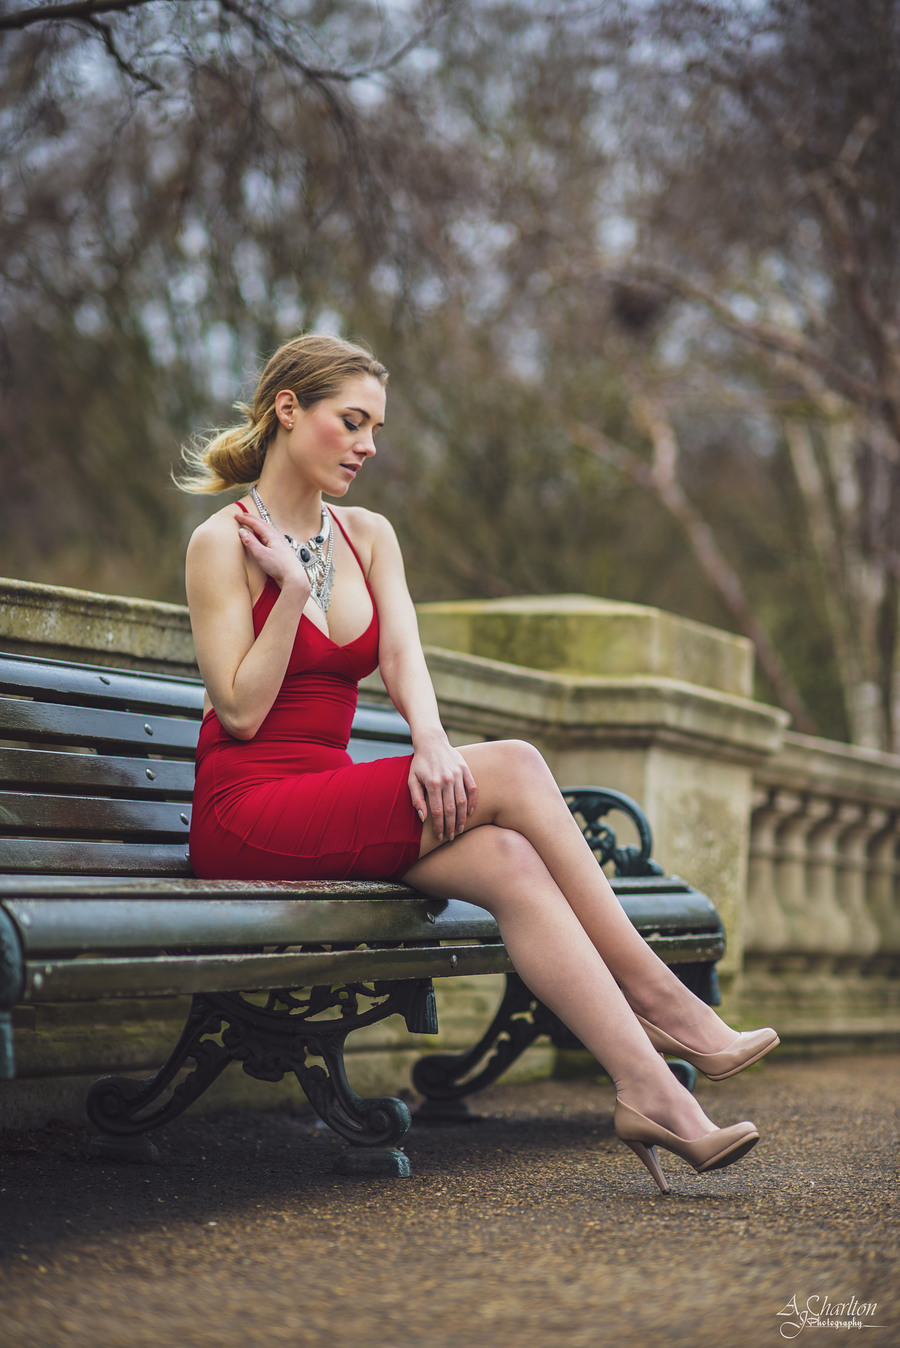 Lady In Red / Photography by AJ Charlton / Uploaded 30th March 2016 @ 12:28 AM